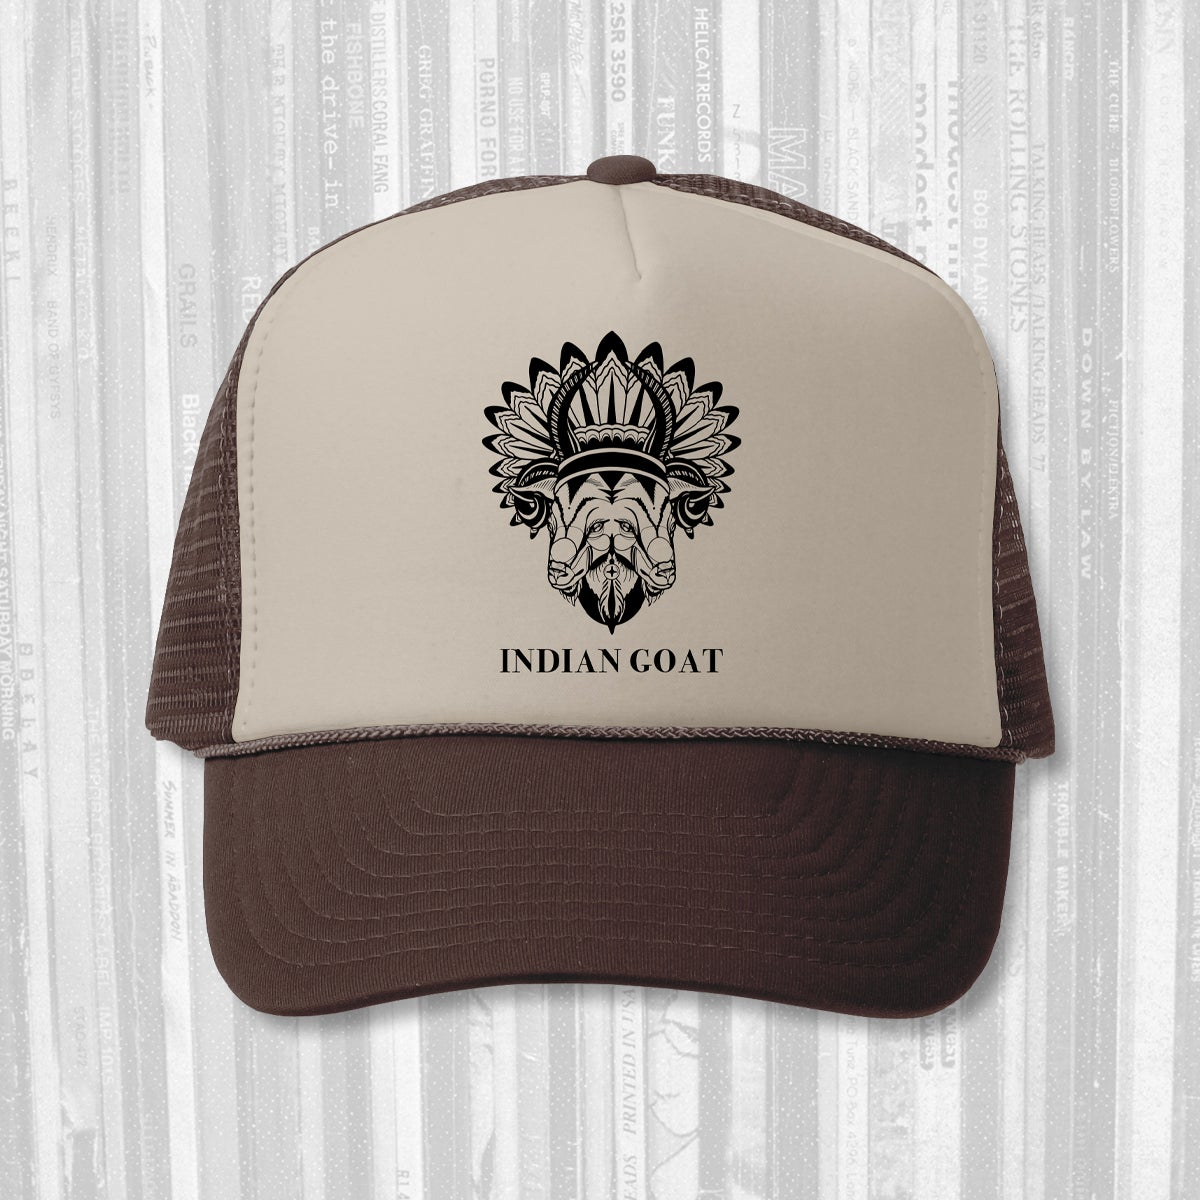 Indian Goat: Trucker Hat - Brown/Tan